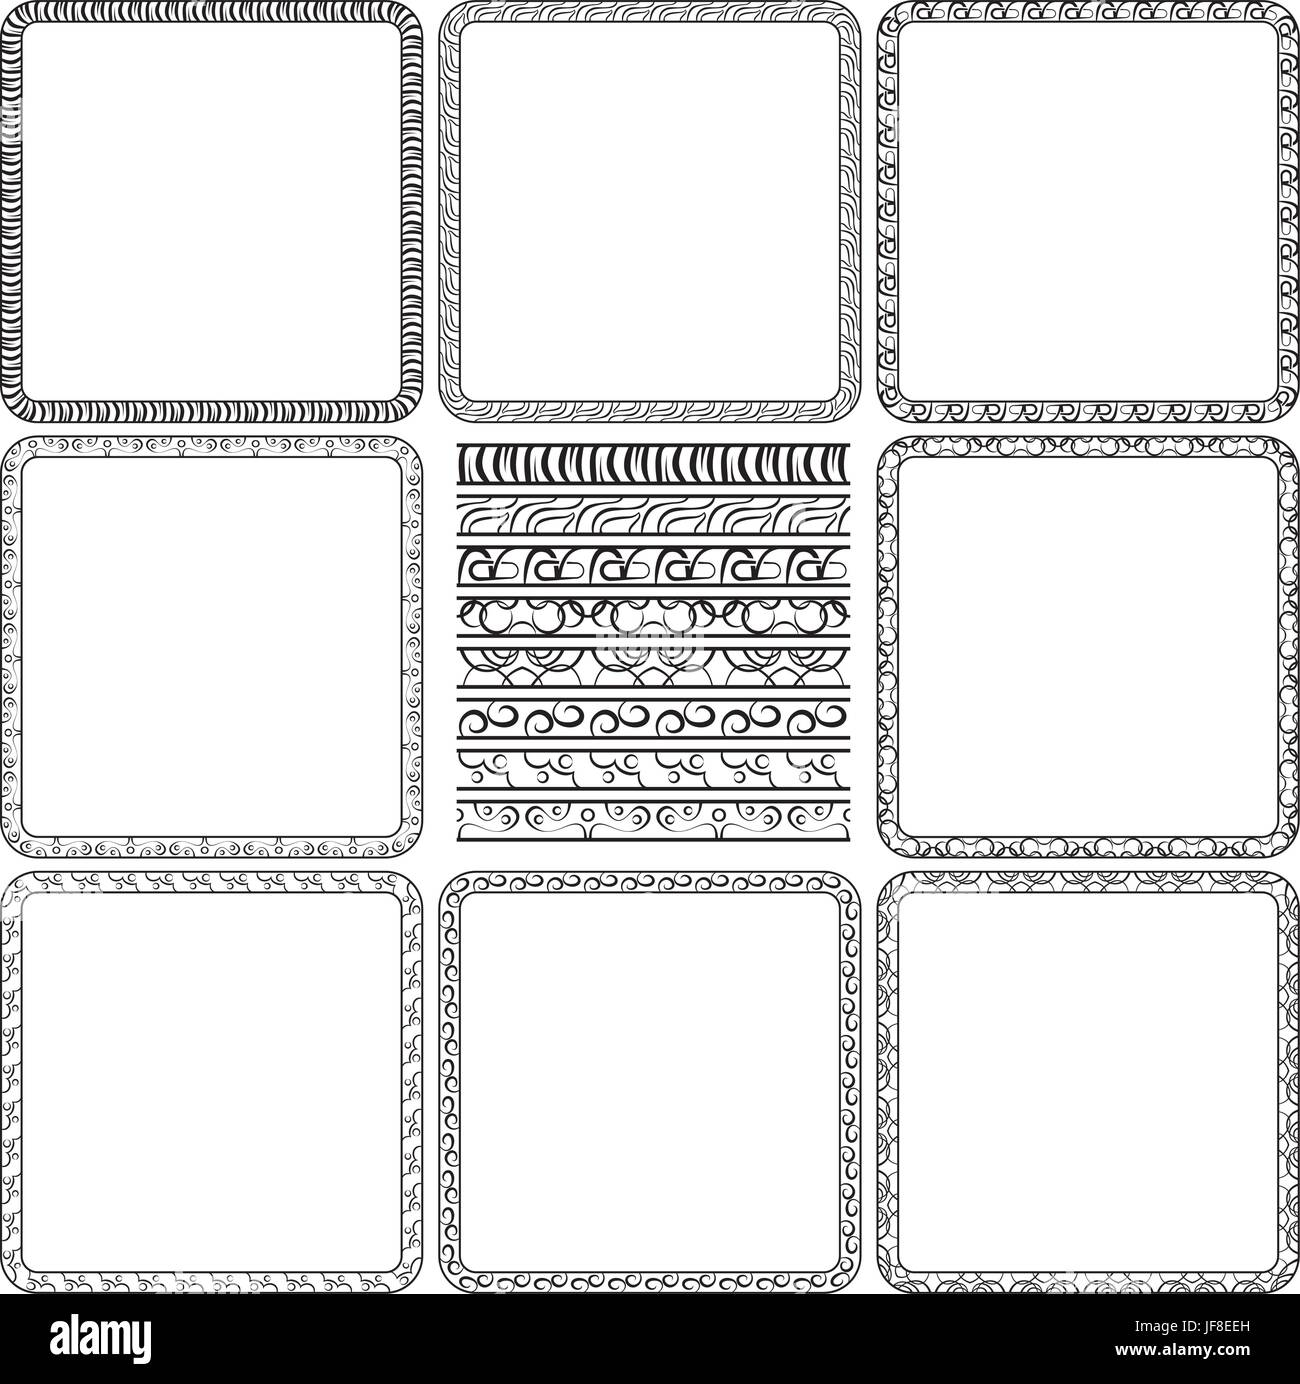 Set Isolated Vintage Borders Vector Stockfotos & Set Isolated ...